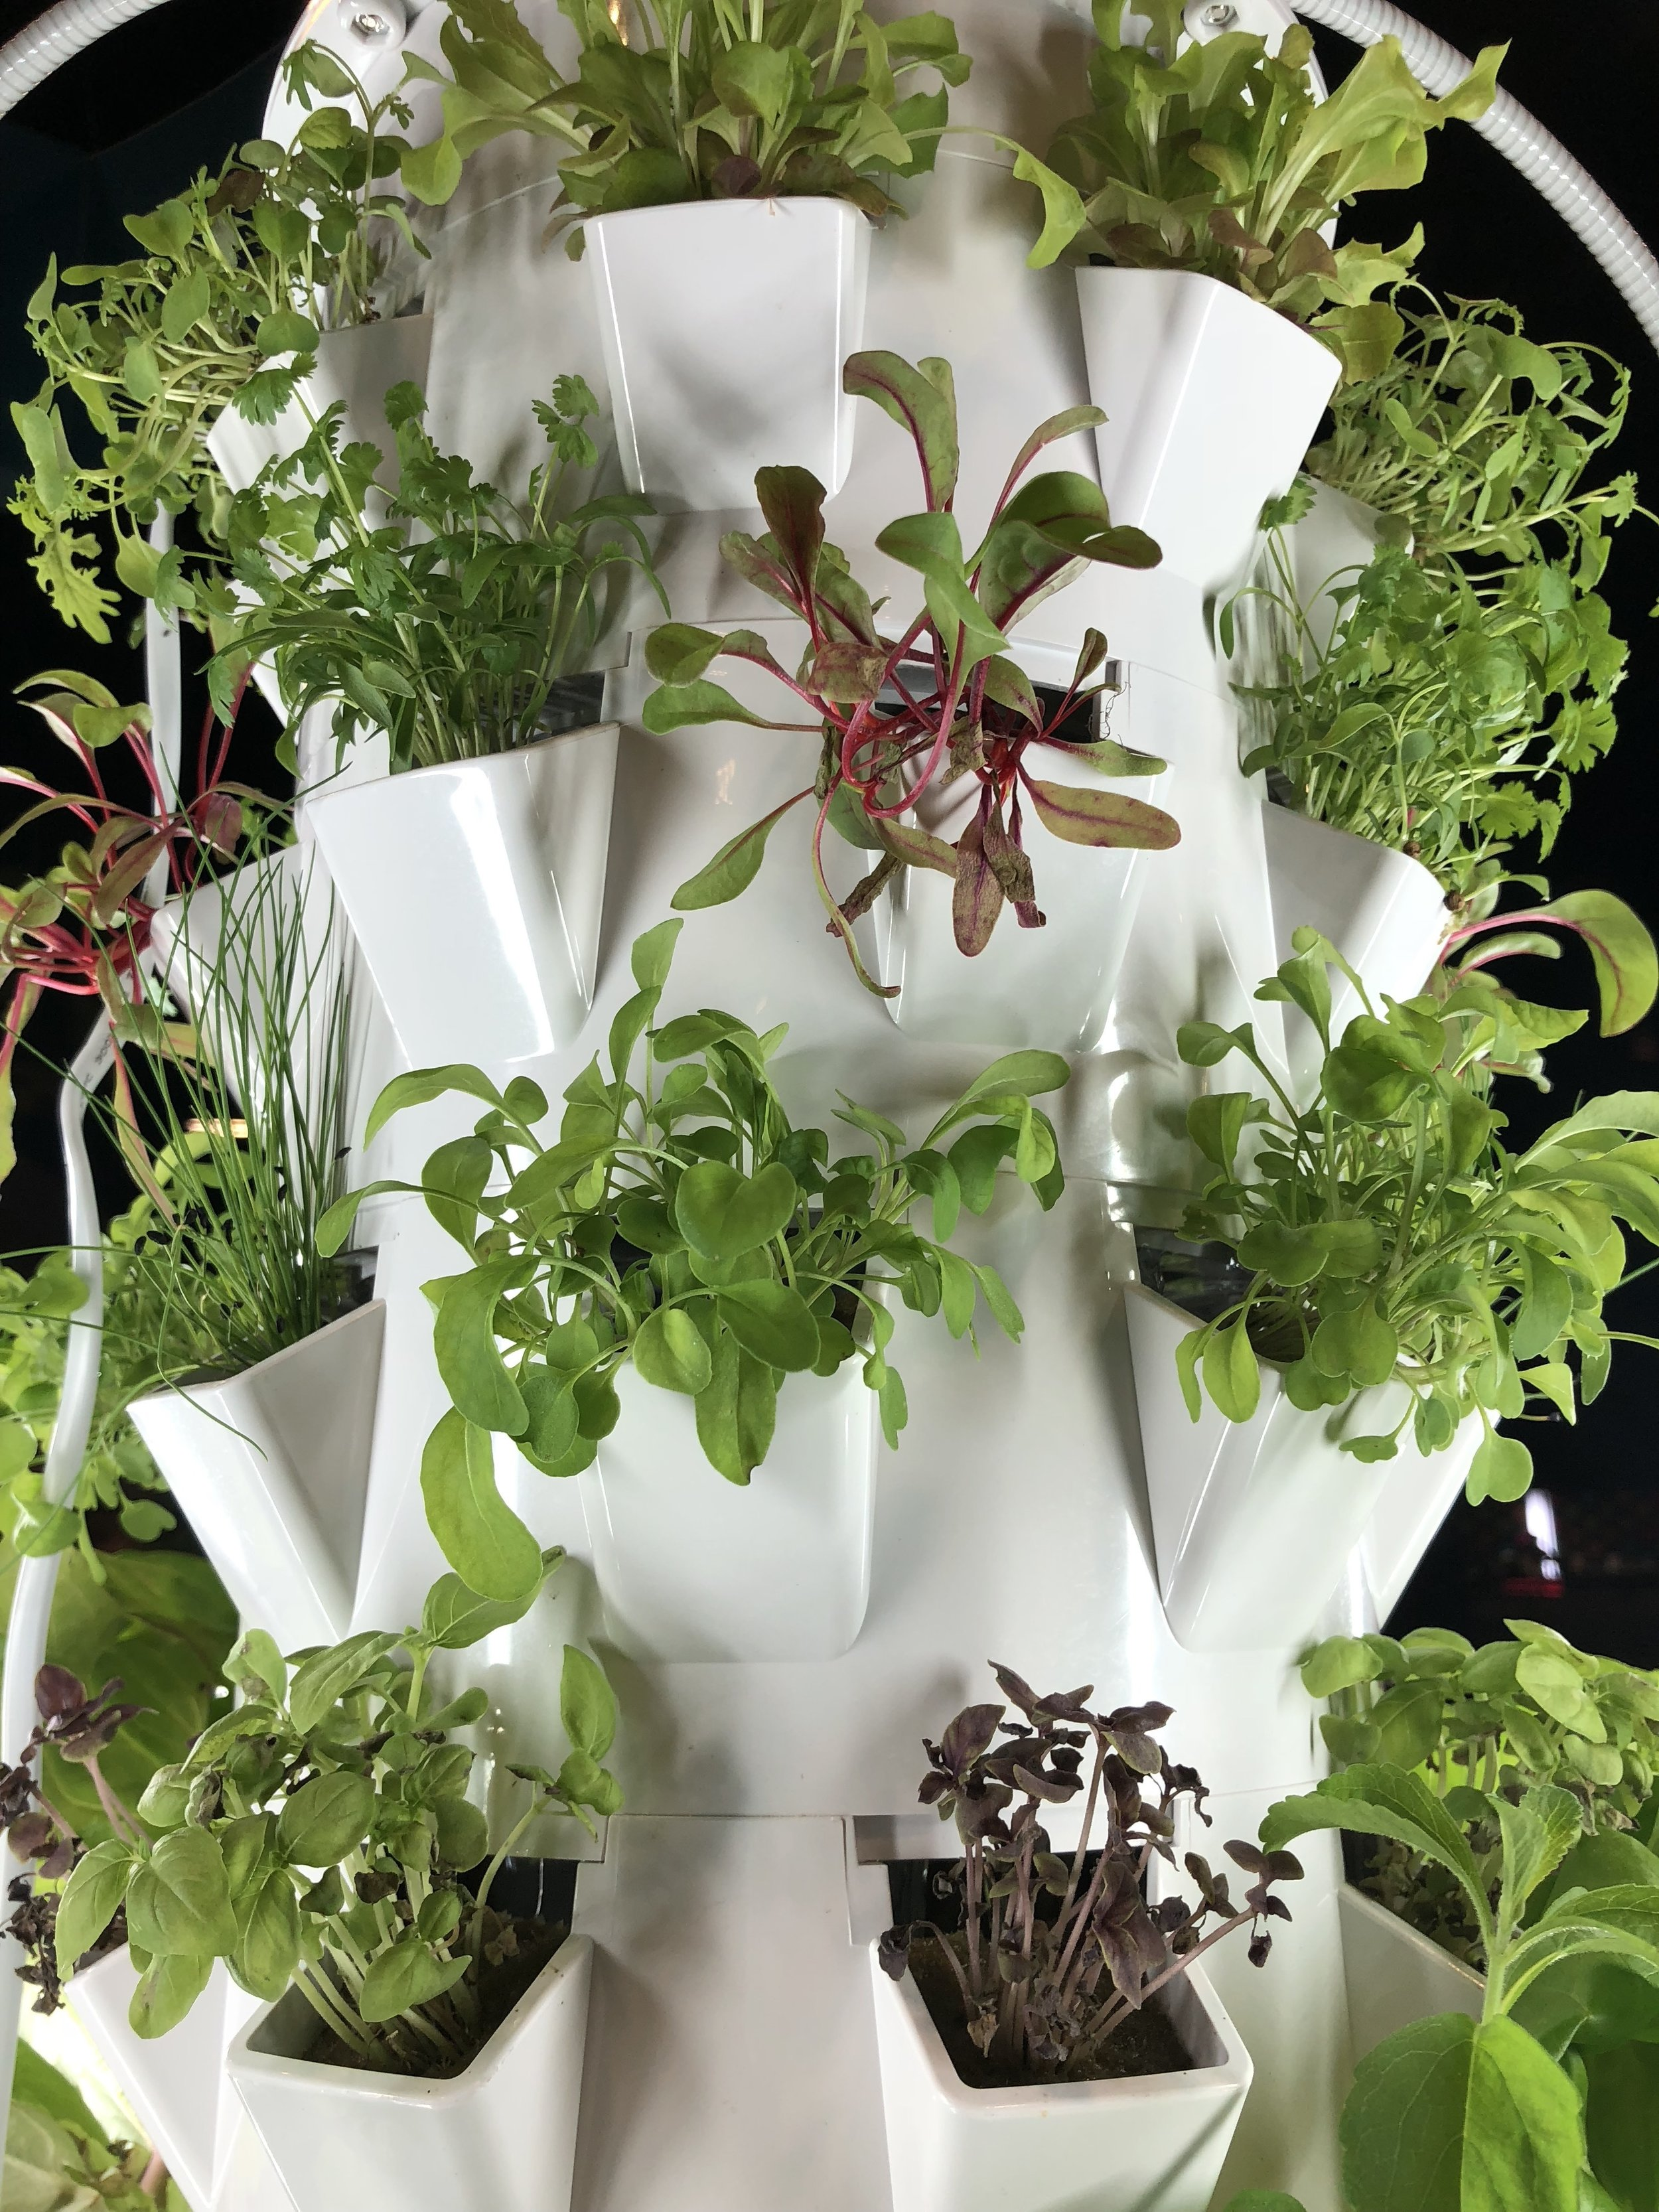 Products like the Tower Garden are ways in which you can grow your OWN food! Check out these micro-greens.